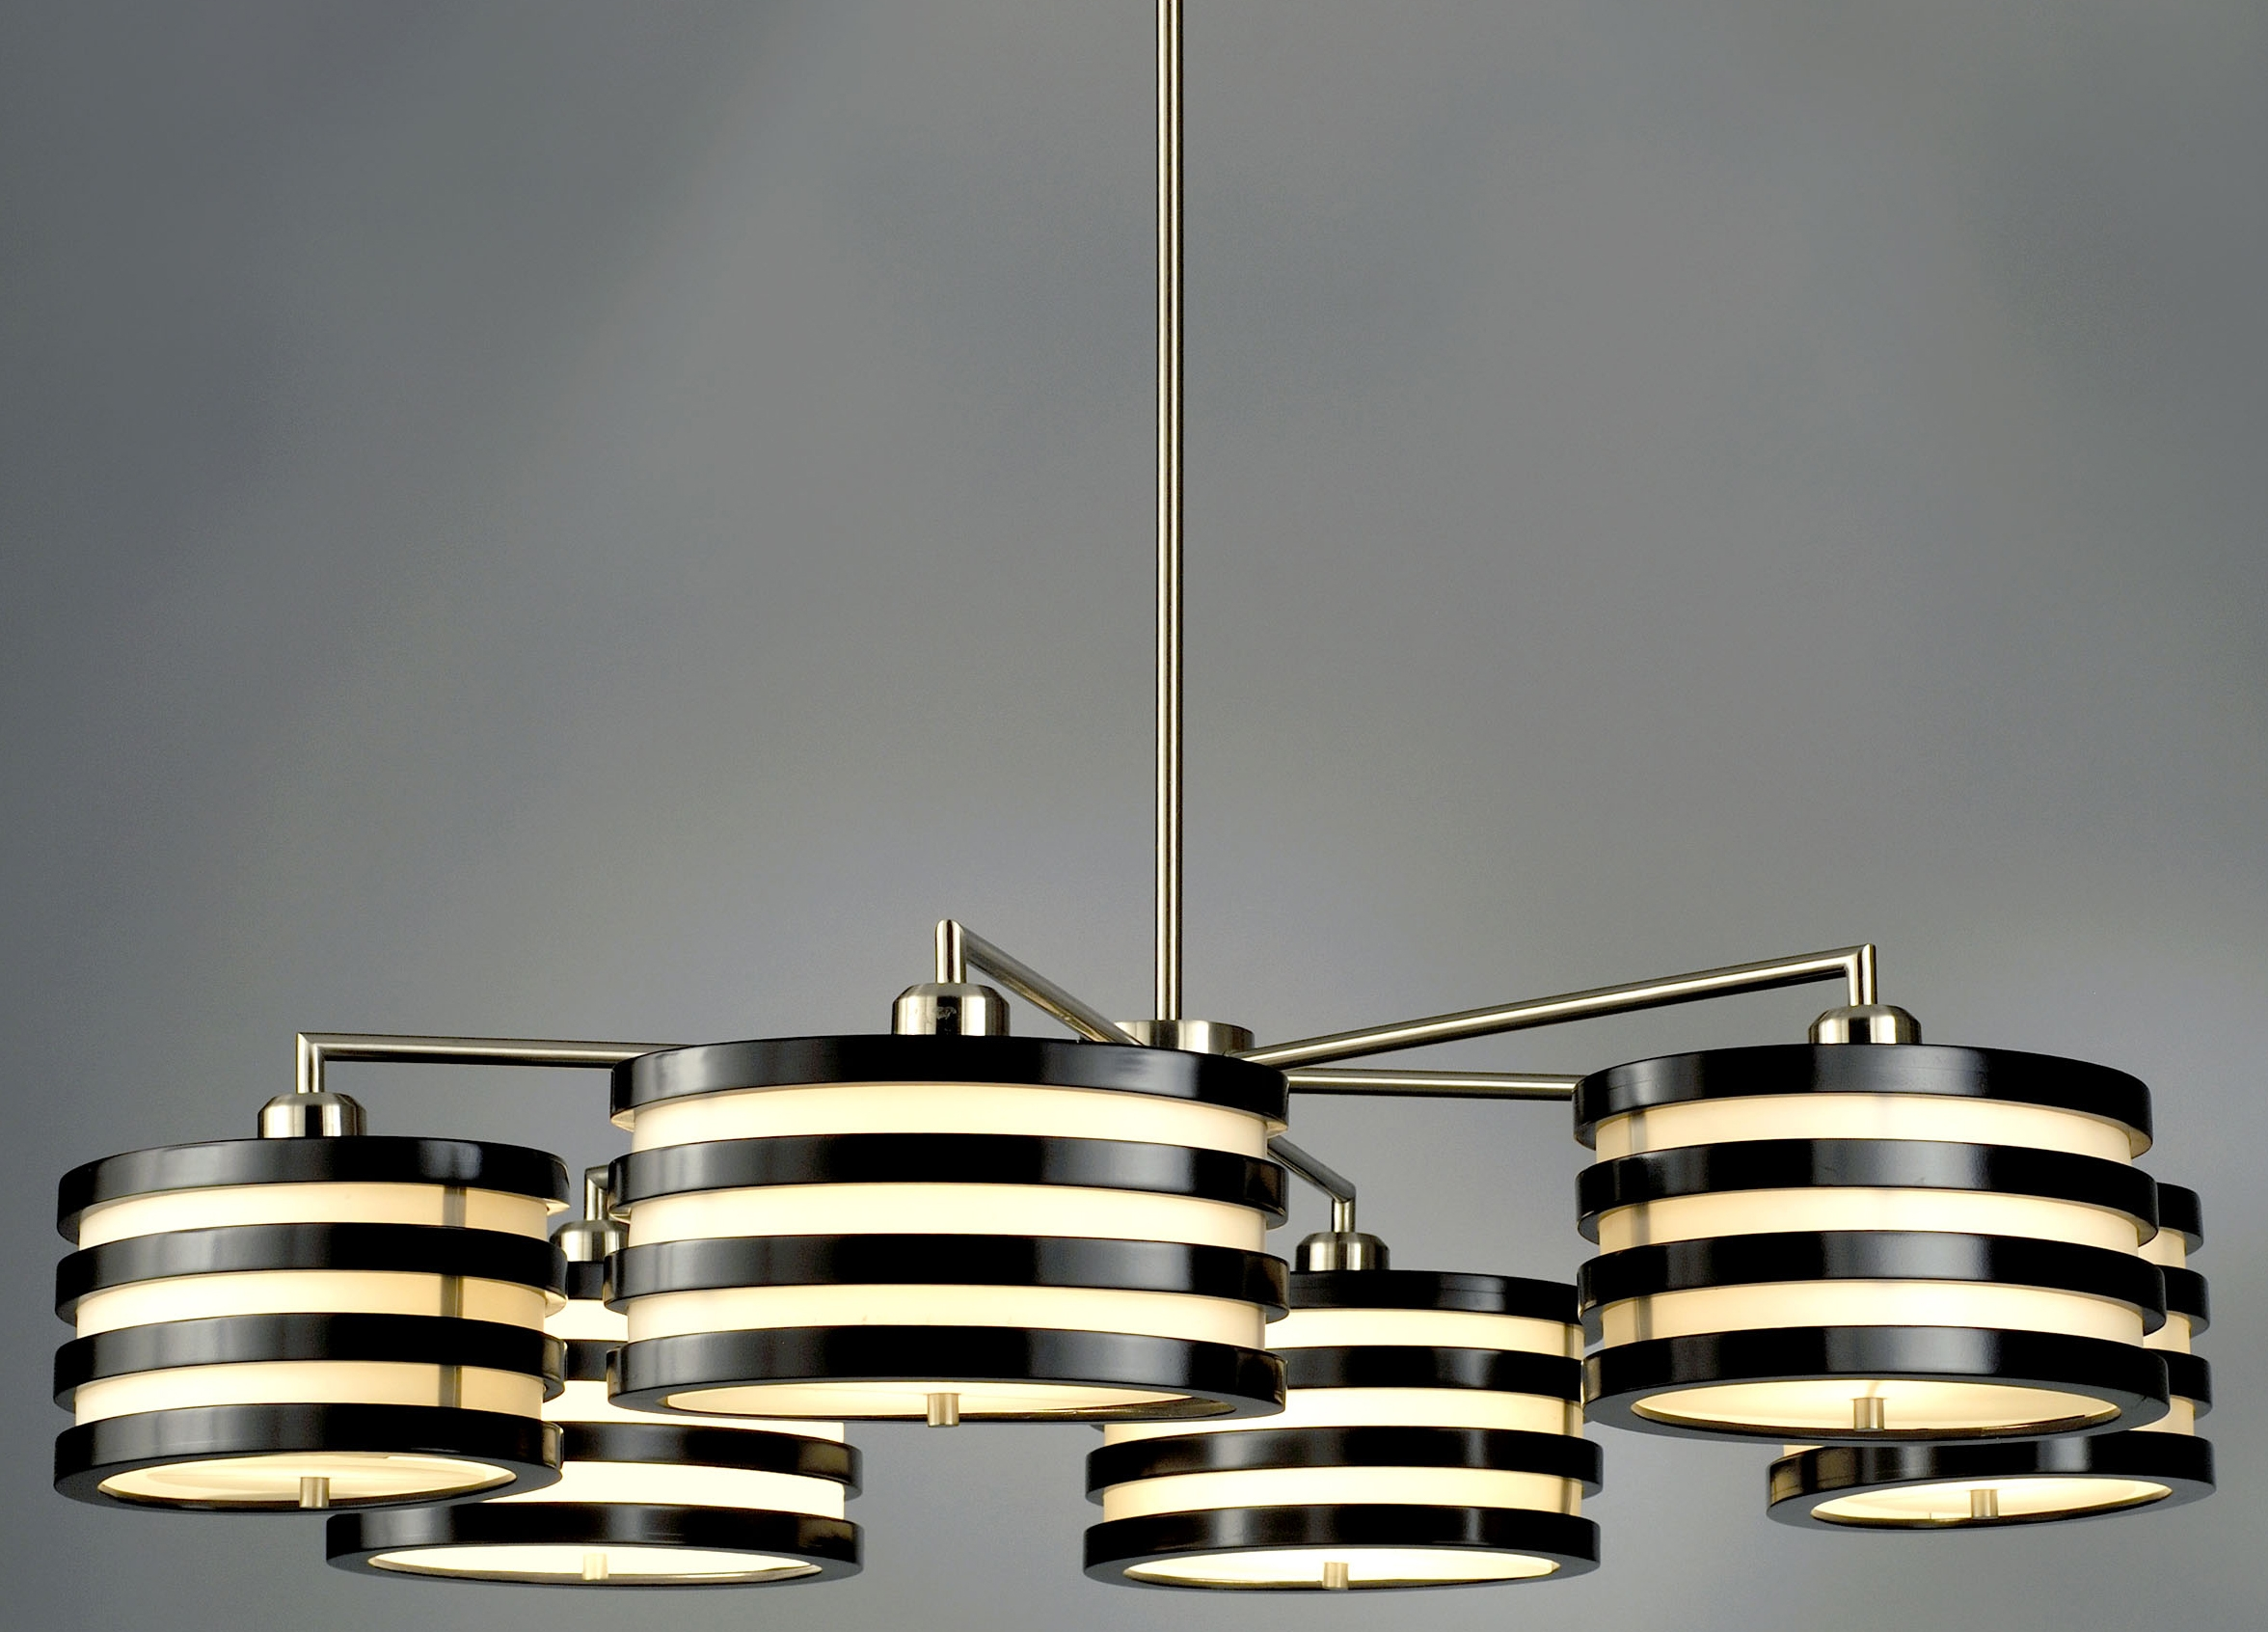 Modern Chandelier Light Fixtures Alexsullivanfund For Contemporary Chandeliers (Image 13 of 15)